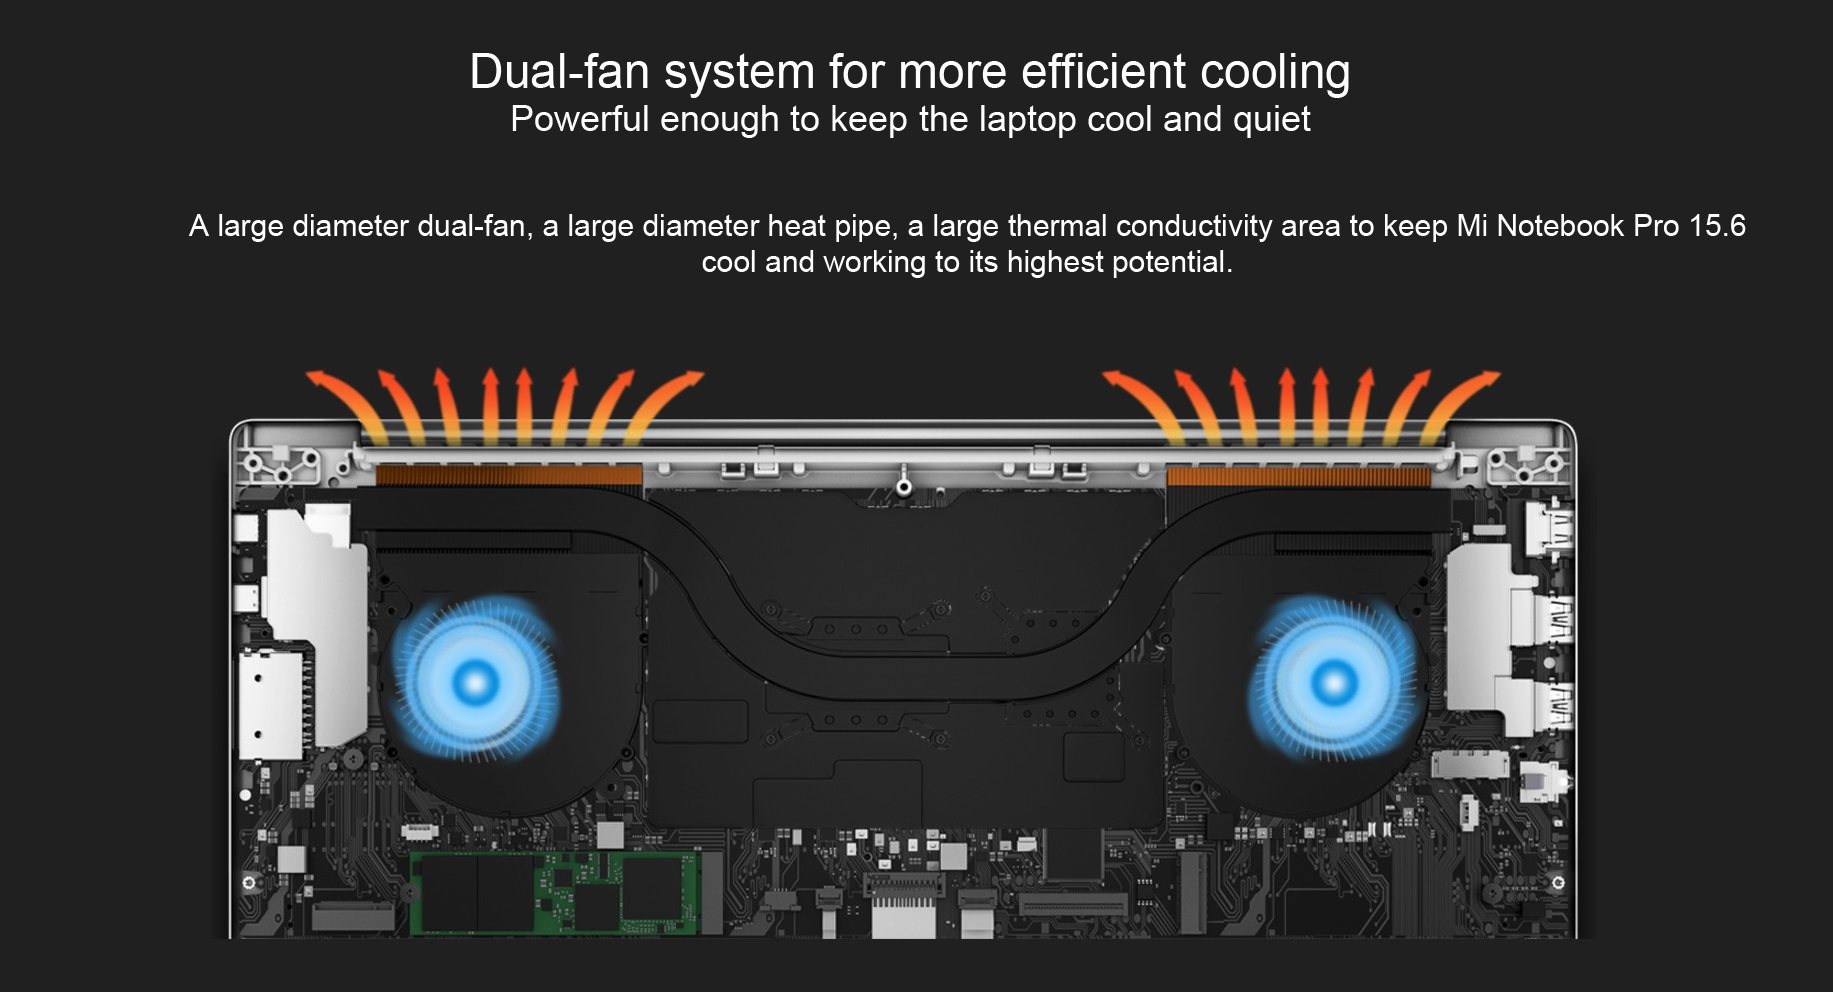 Xiaomi Mi Notebook Pro 15 Dual fan system